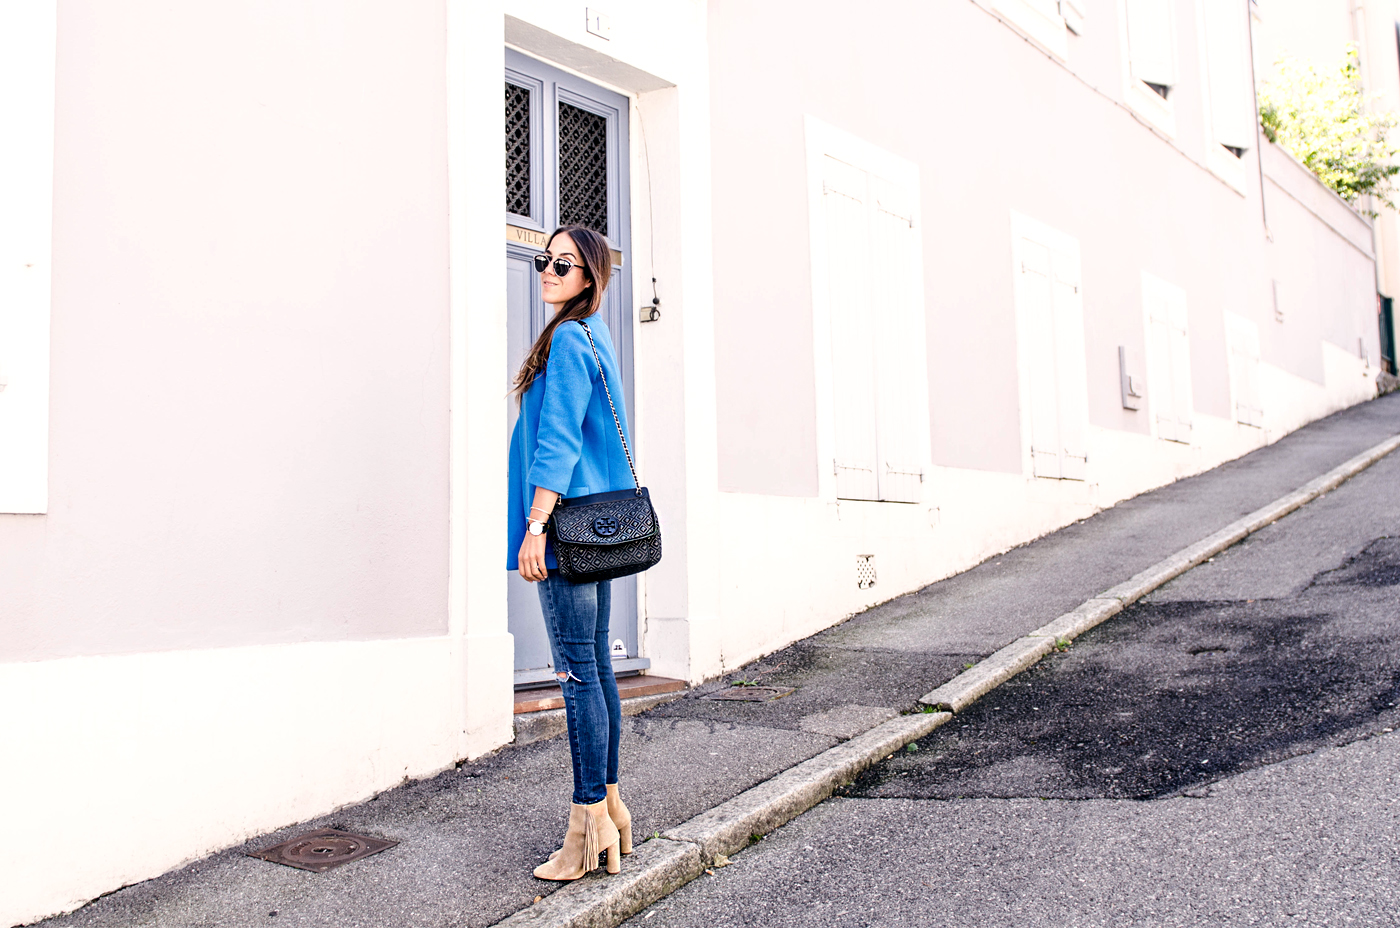 alison liaudat, blog mode suisse, swiss fashion blogger, fashion blog suisse, swiss blogger, dior so real, blue blazer, zara, zalando boots, fringe boots